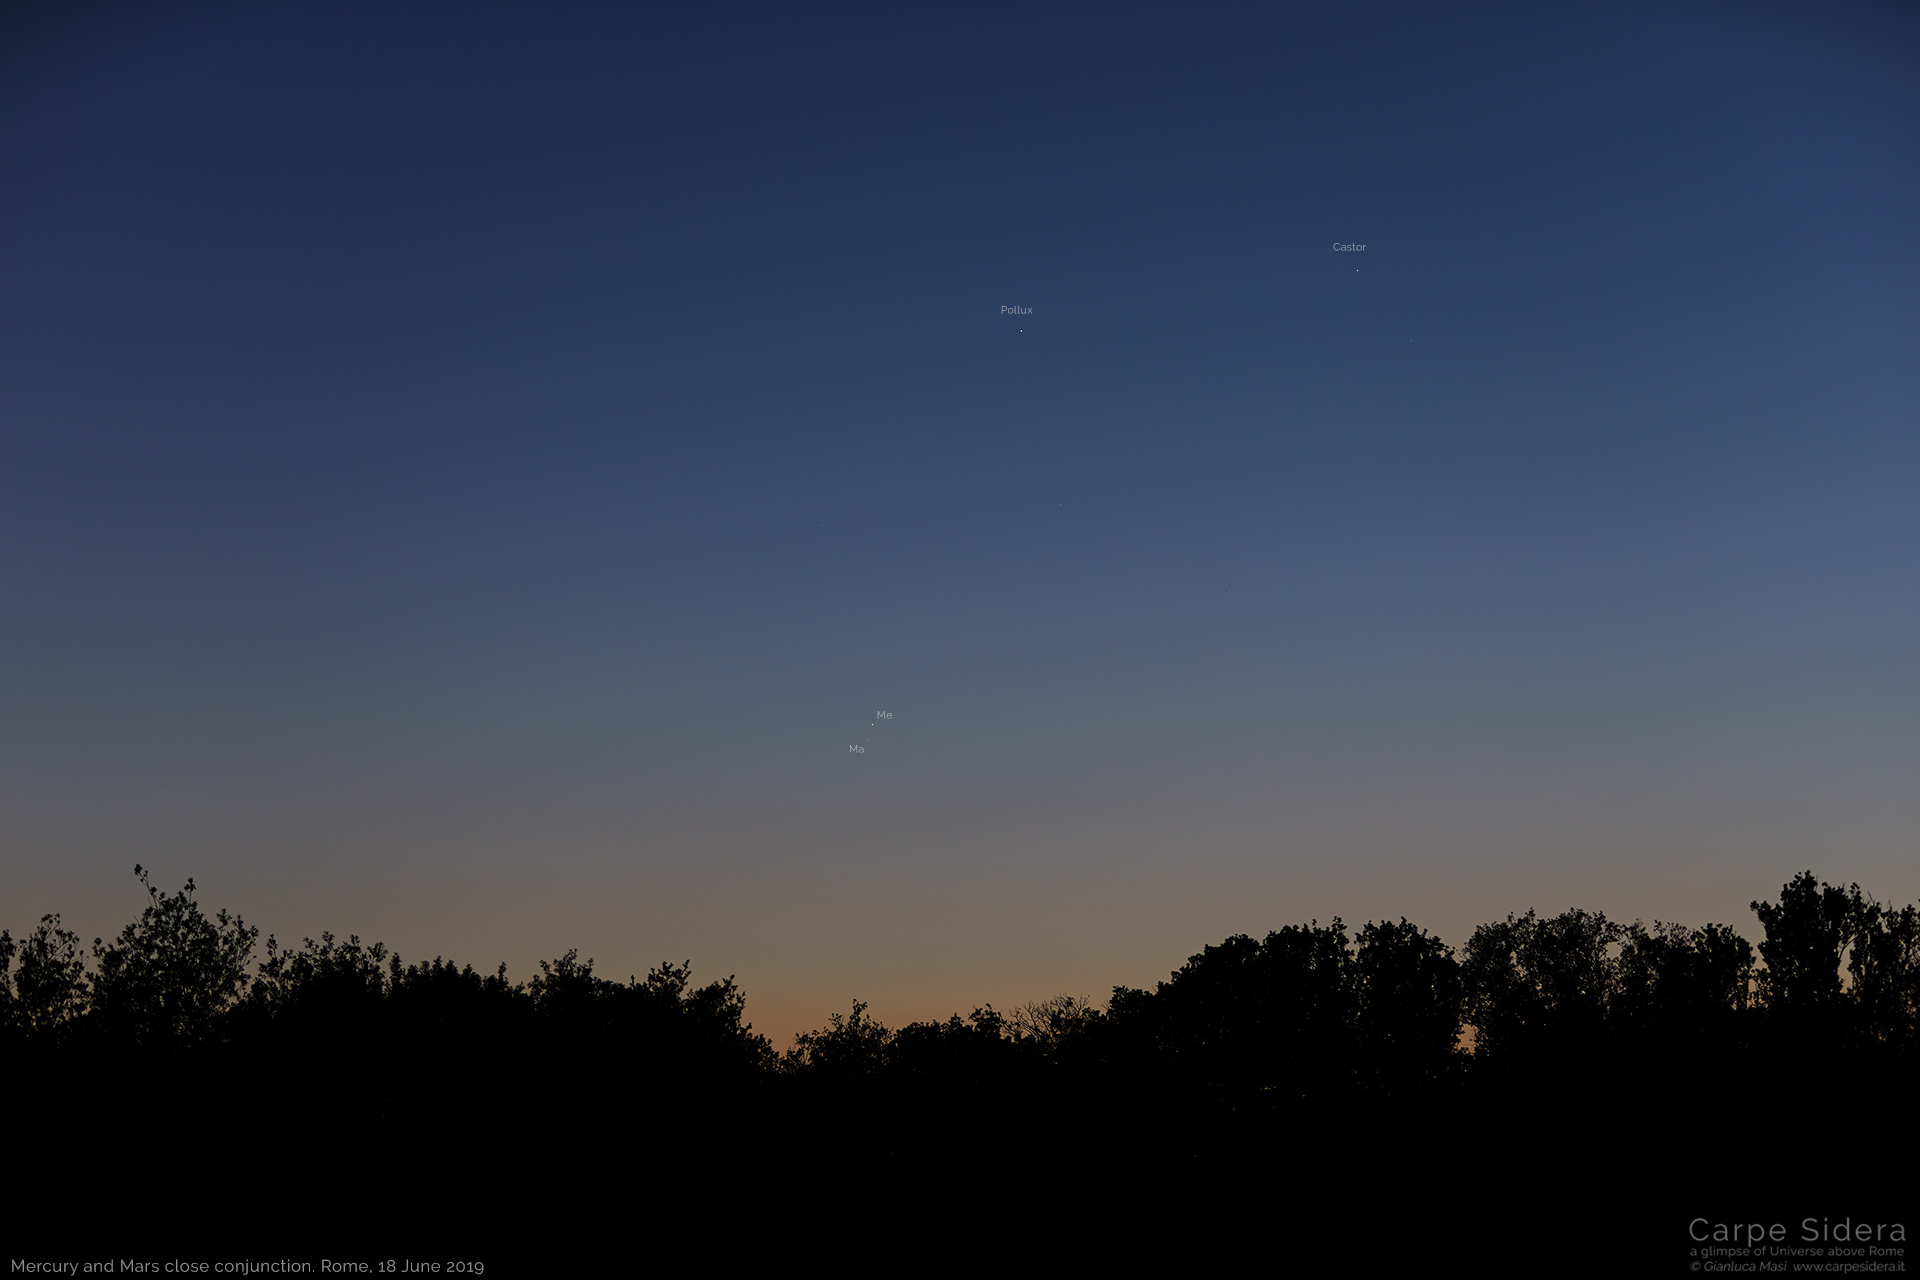 """Mercury and Mars shine together with Castor and Pollux, the brightest stars in Gemini (""""Twins"""") - 18 June 2019"""